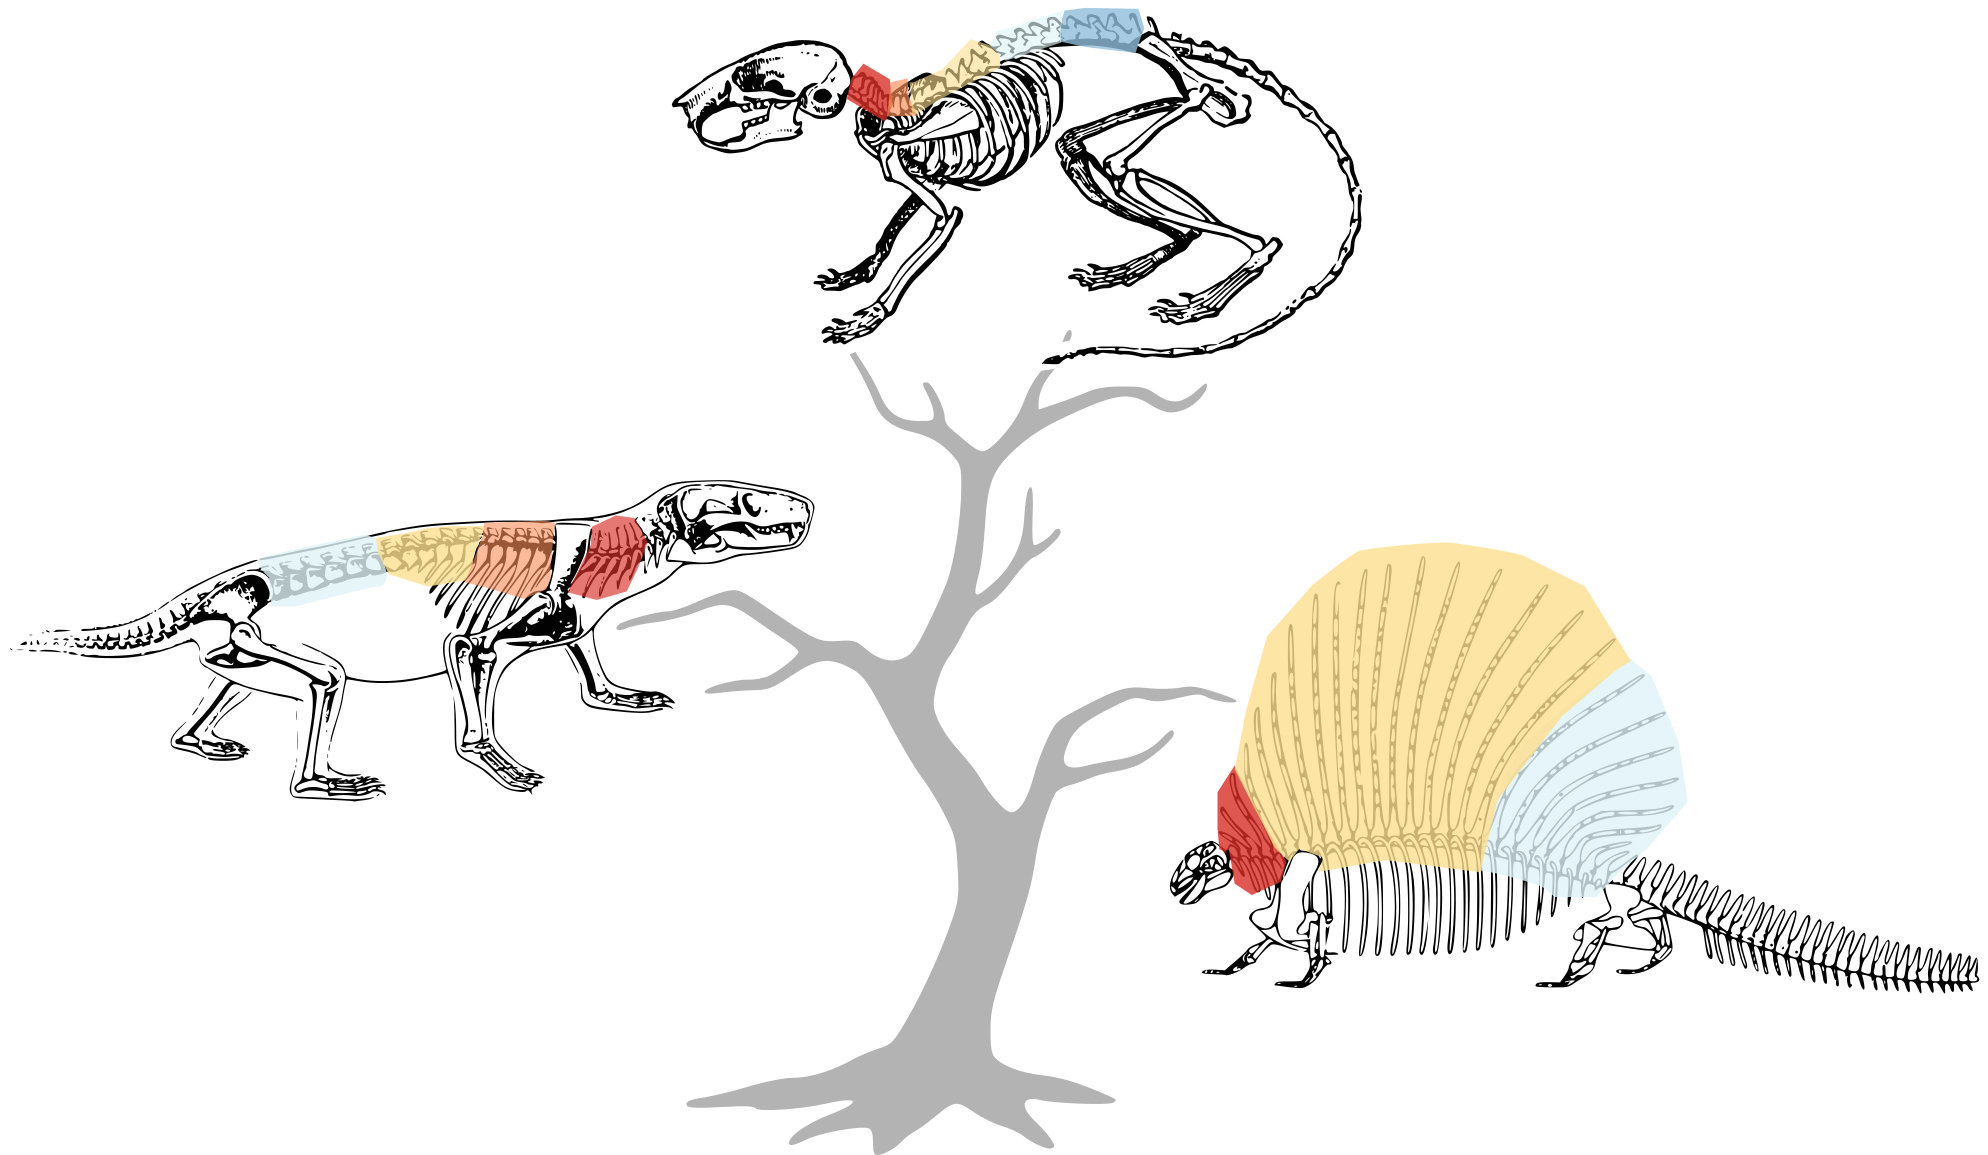 What Makes A Mammal A Mammal Our Spine Say Scientists